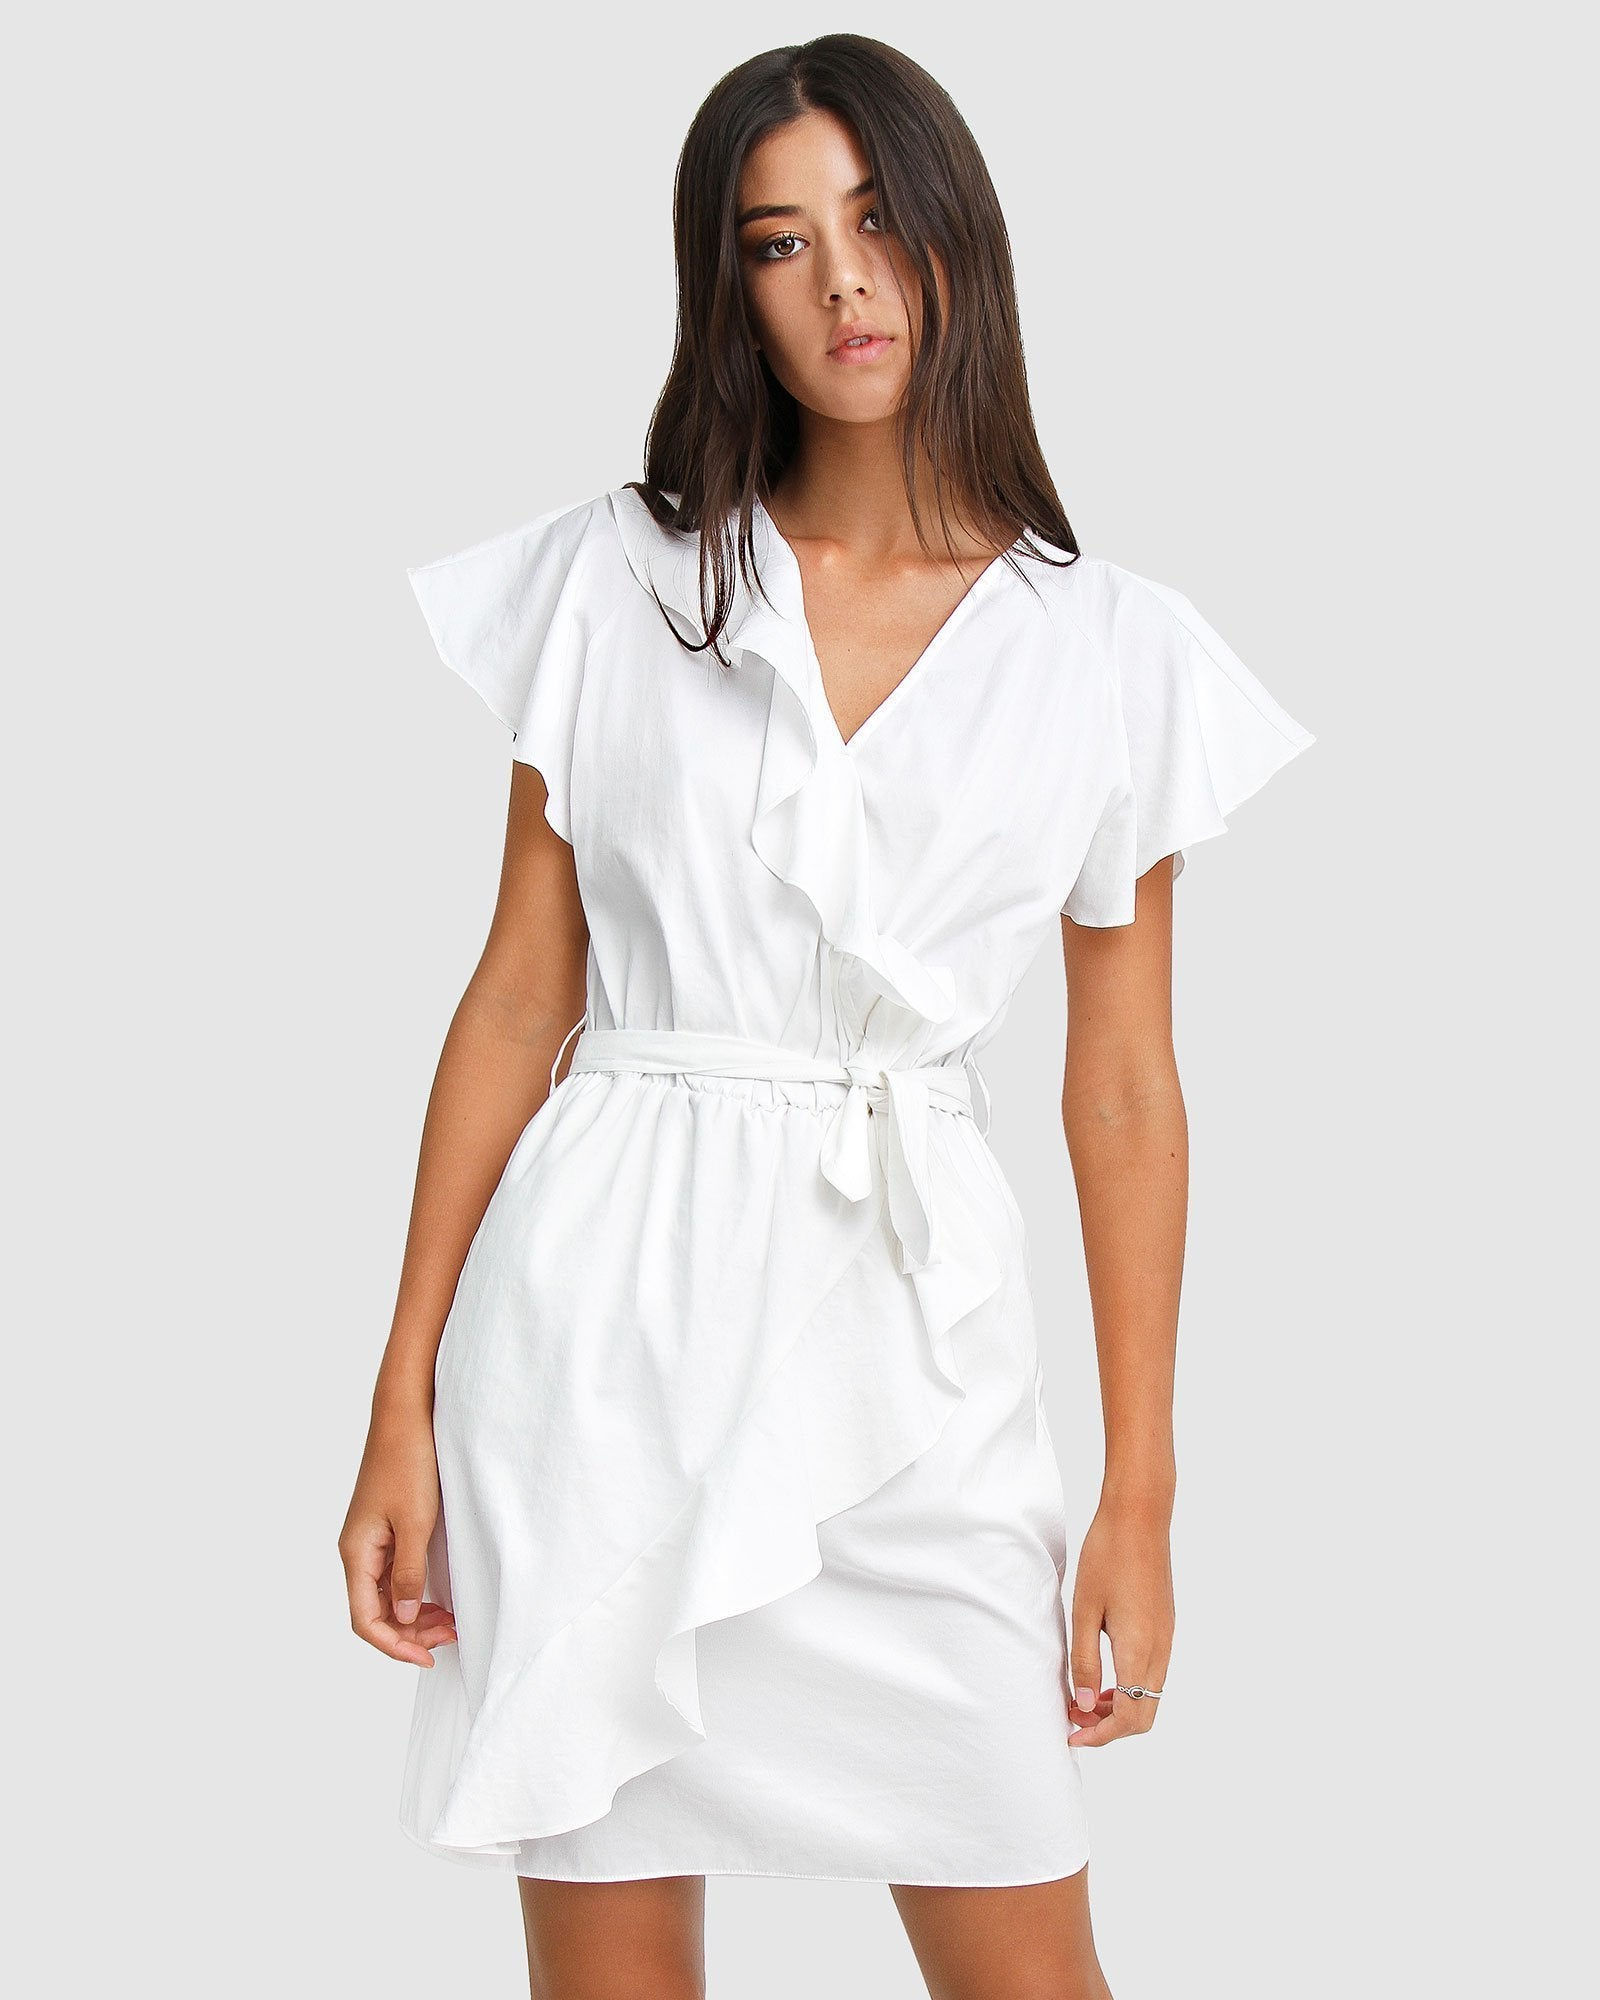 Best Selfie Ruffle Dress - White